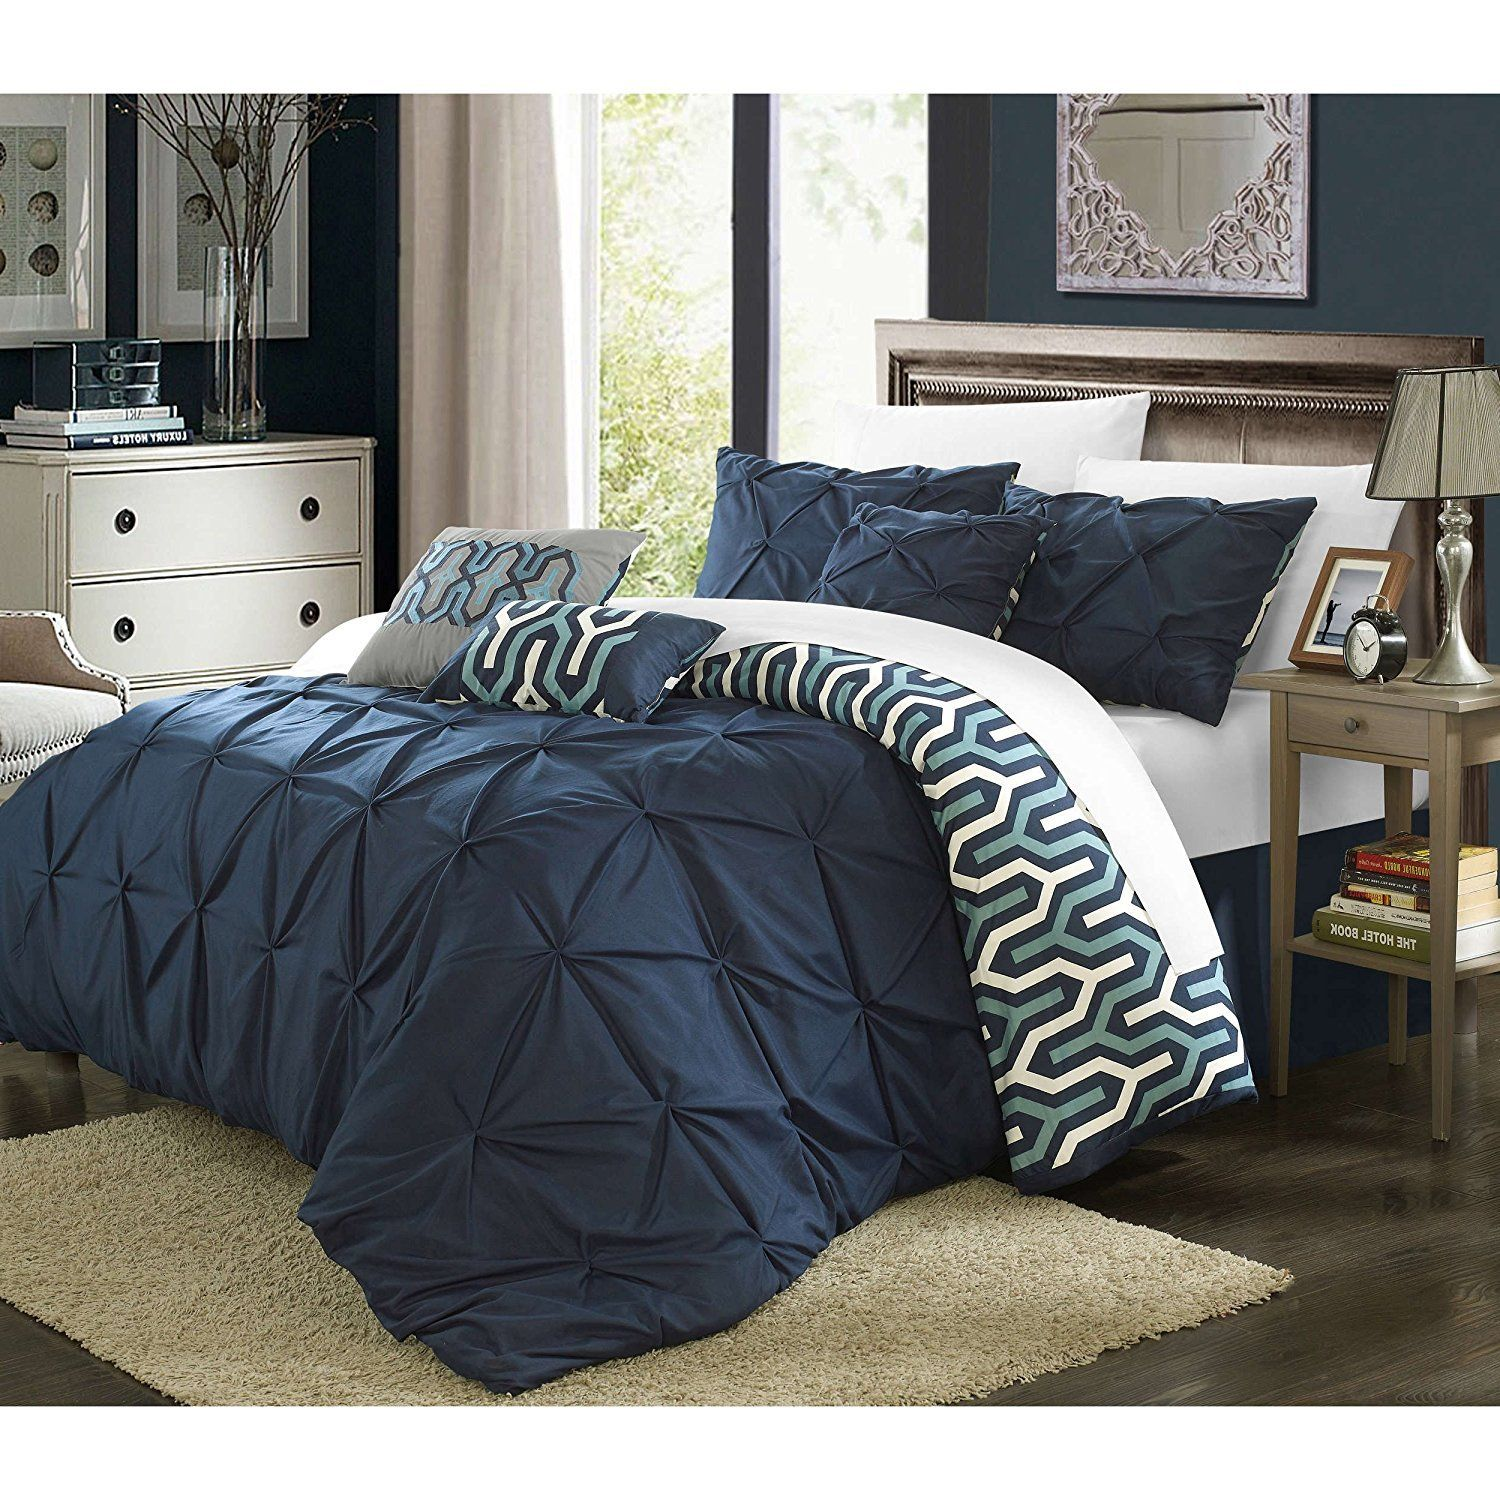 Queen Navy Pinched Pleat forter Set Fancy Luxury Bedding